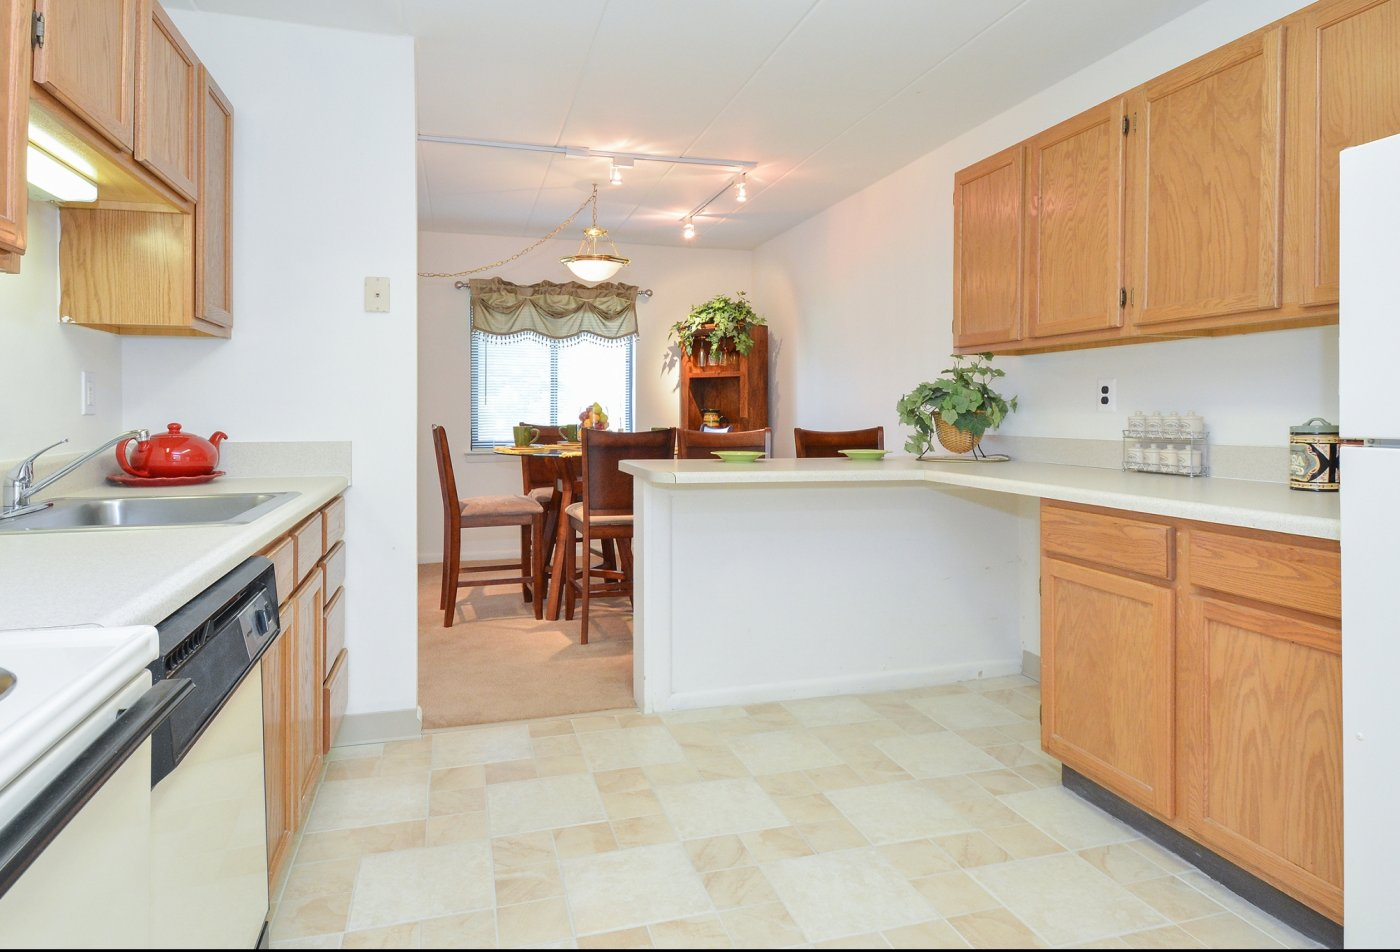 State-of-the-Art Kitchen   Wilmington DE Apartment Homes   Fairway Park Apartments & Townhomes